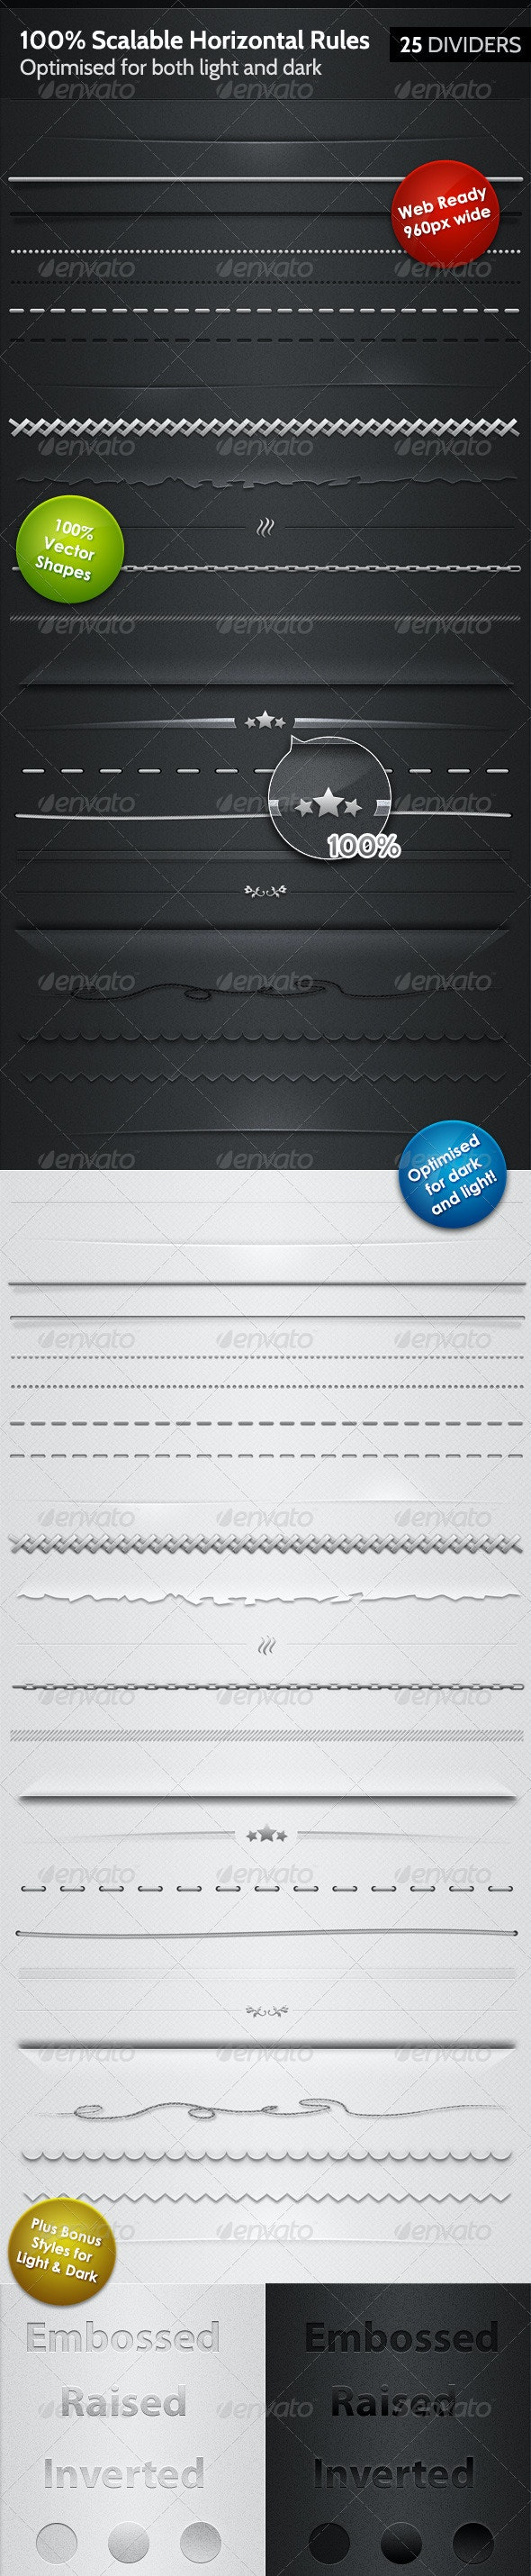 25 Horizontal Rules / Dividers - 100% Resizable - Miscellaneous Web Elements